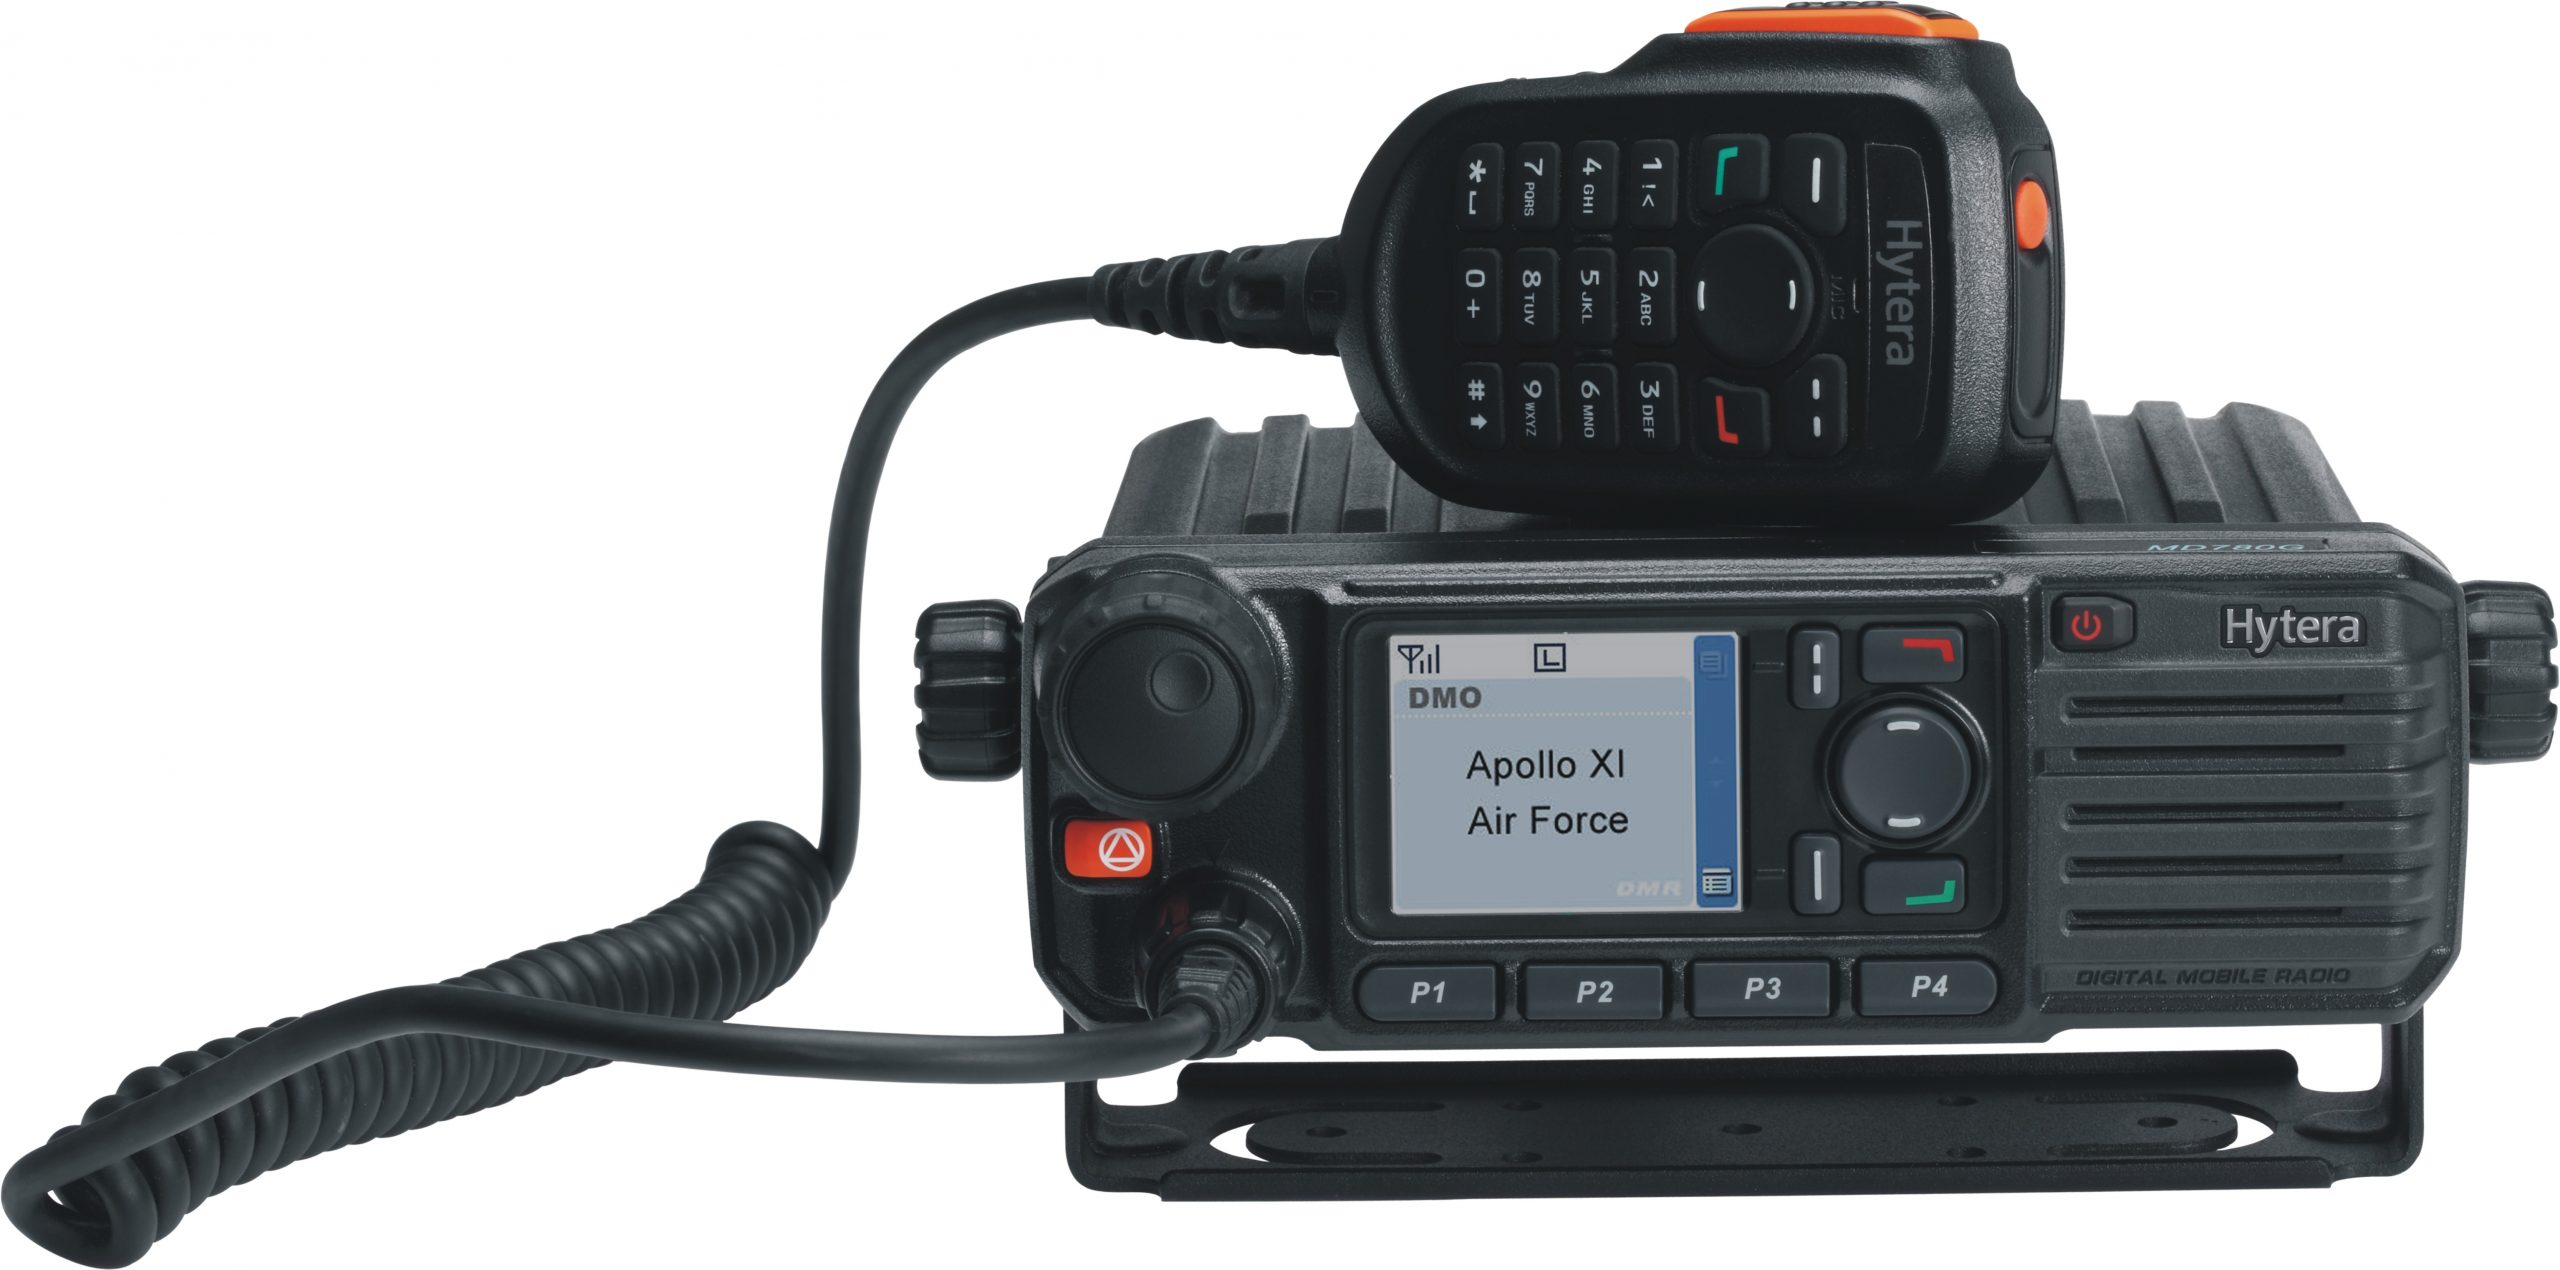 Image of the Hytera MD782 Two-Way Radio